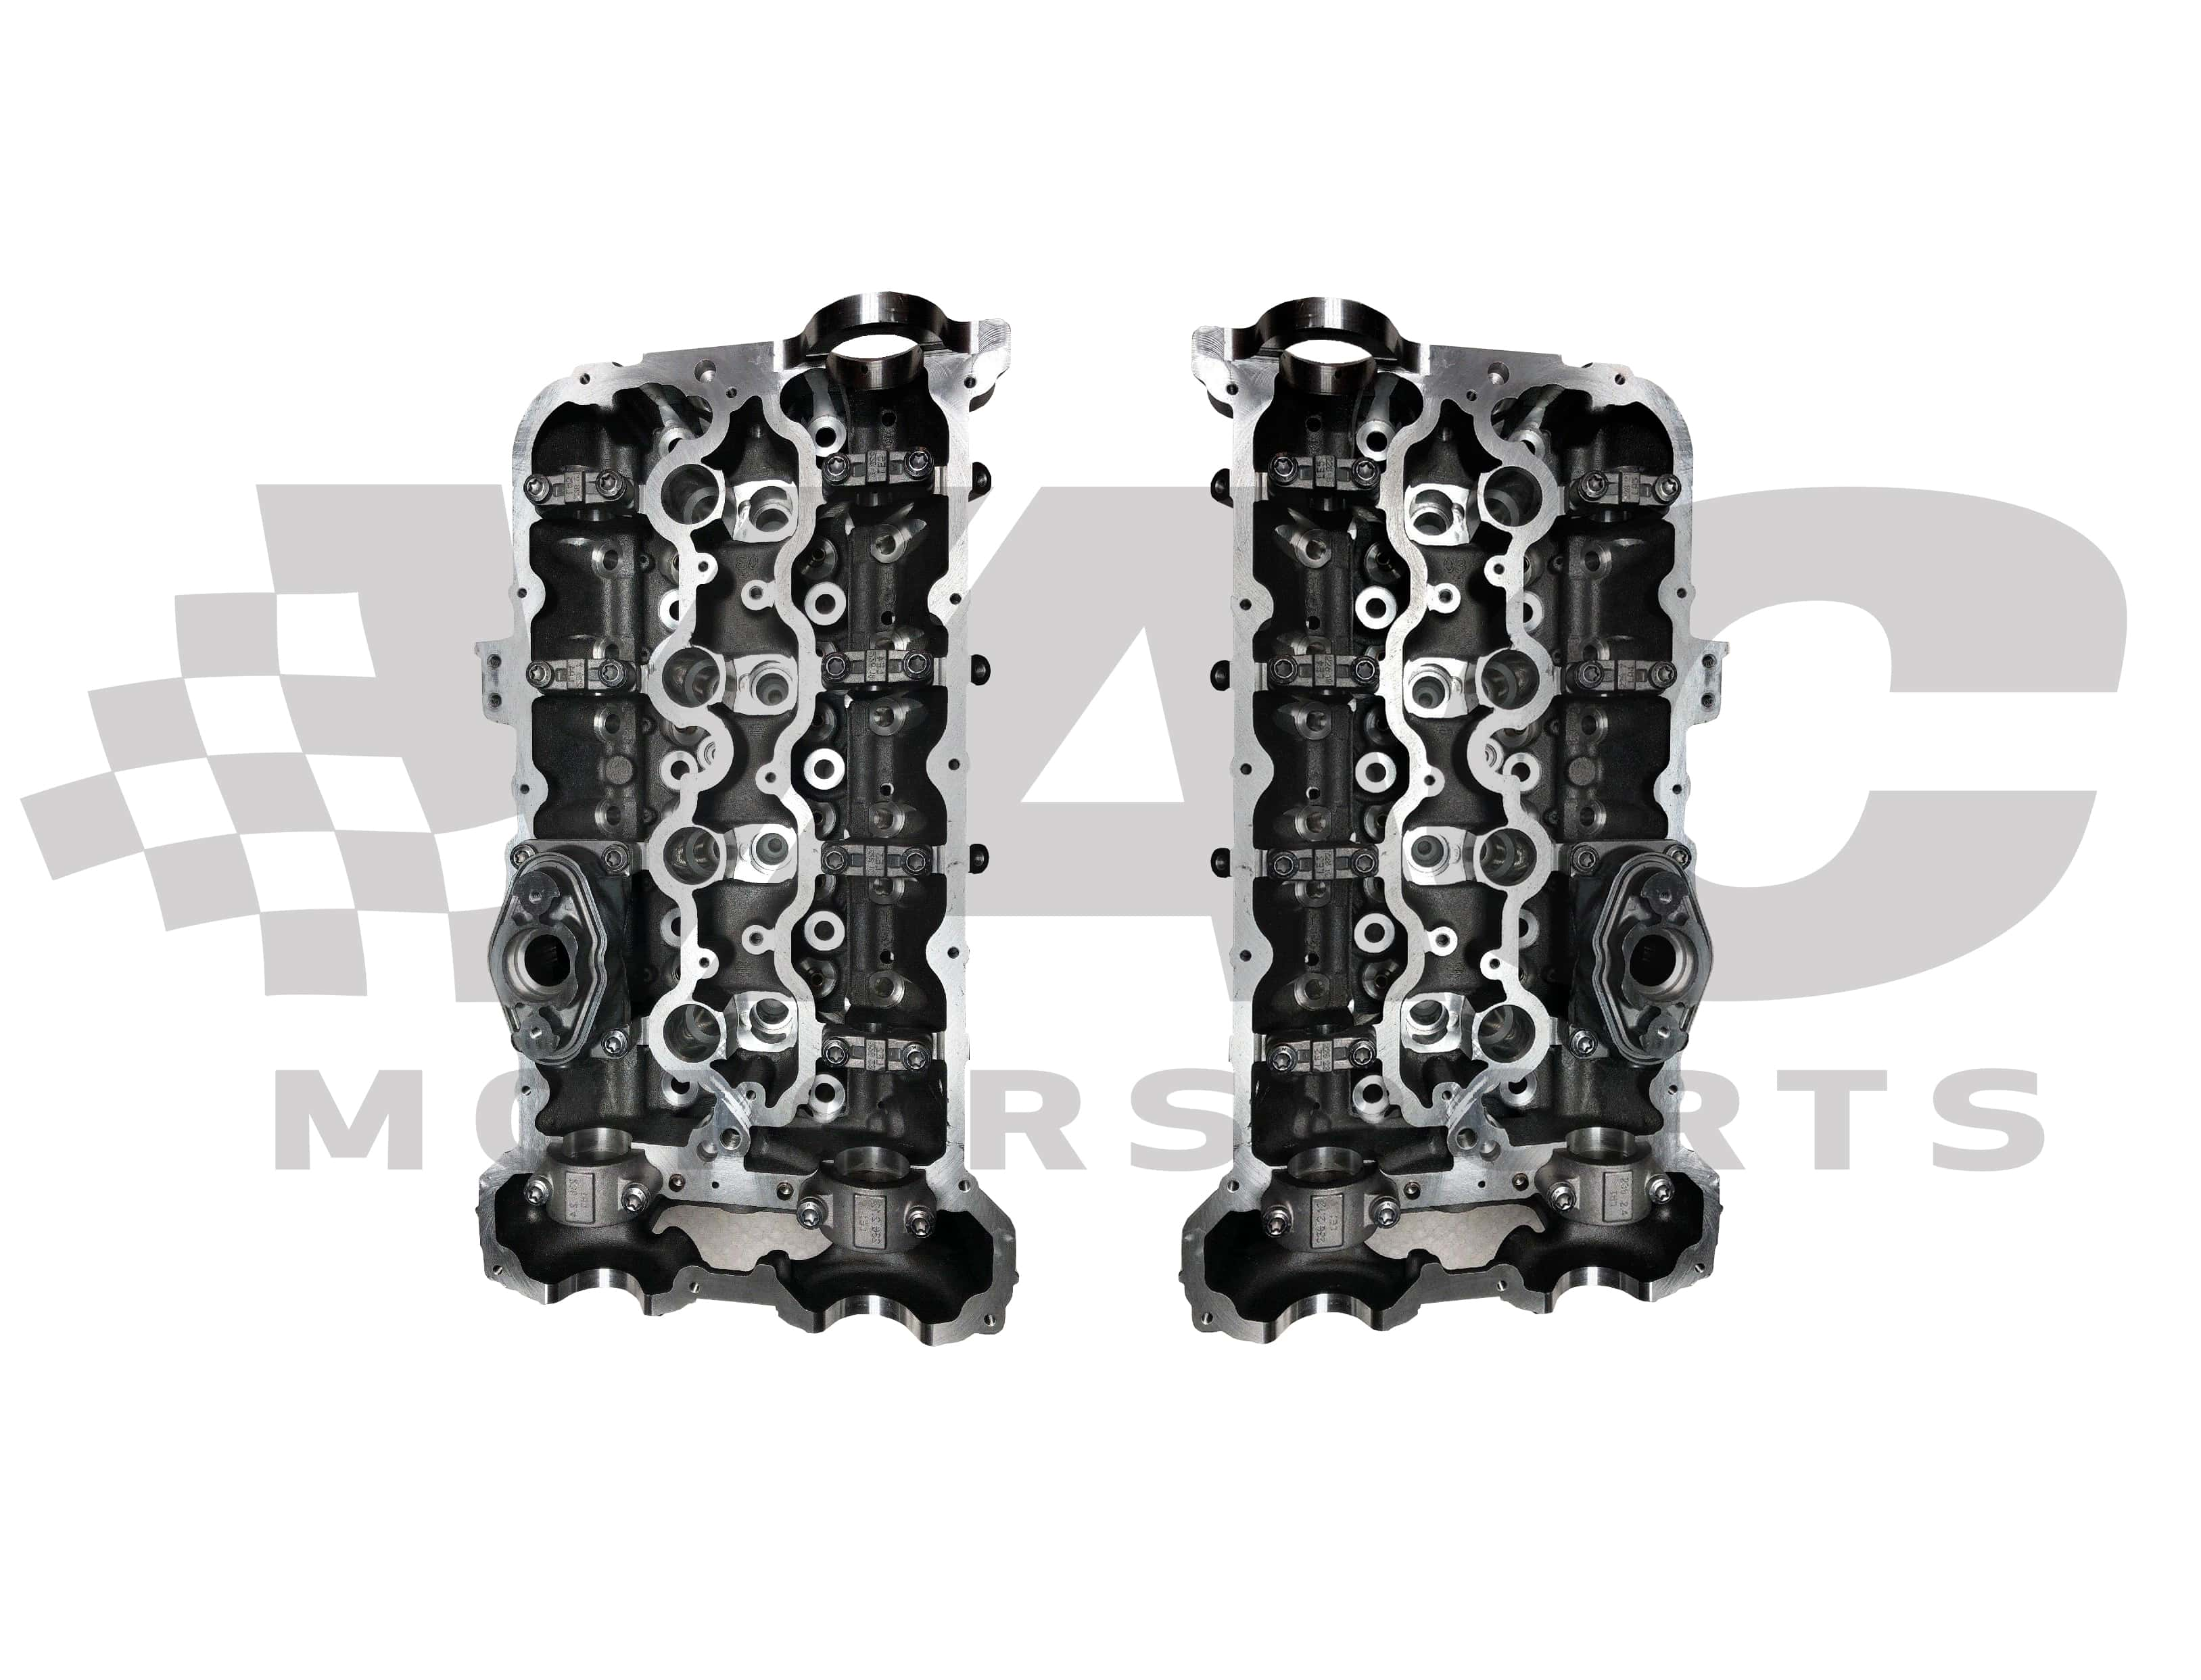 VAC - S63 STAGE 3 PERFORMANCE CYLINDER HEAD THUMBNAIL